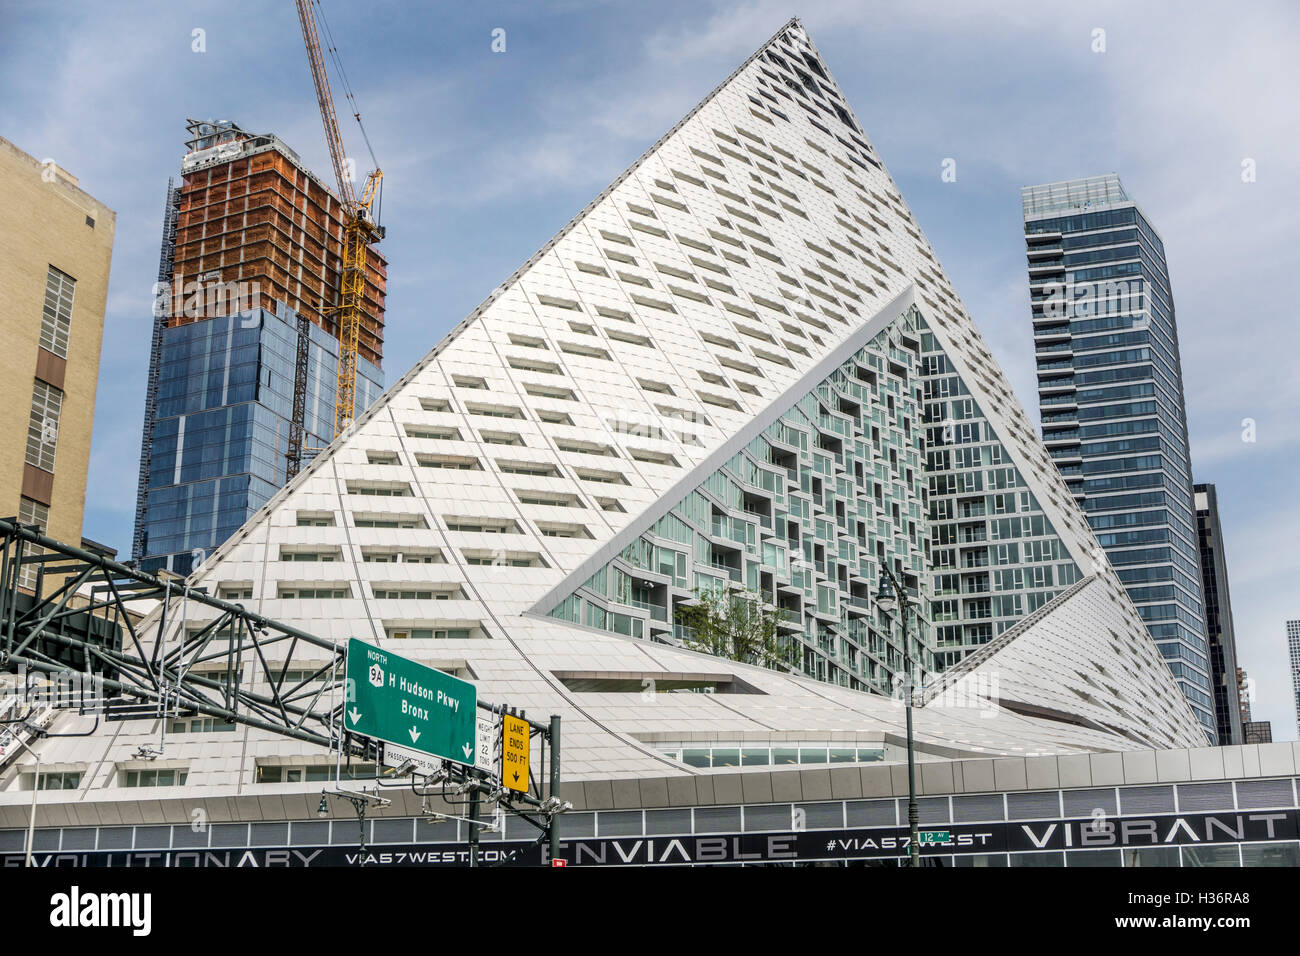 striking pyramidal form of luxury rental apartment high rise Via 57 West dominates  Hudson river waterfront skyline - Stock Image